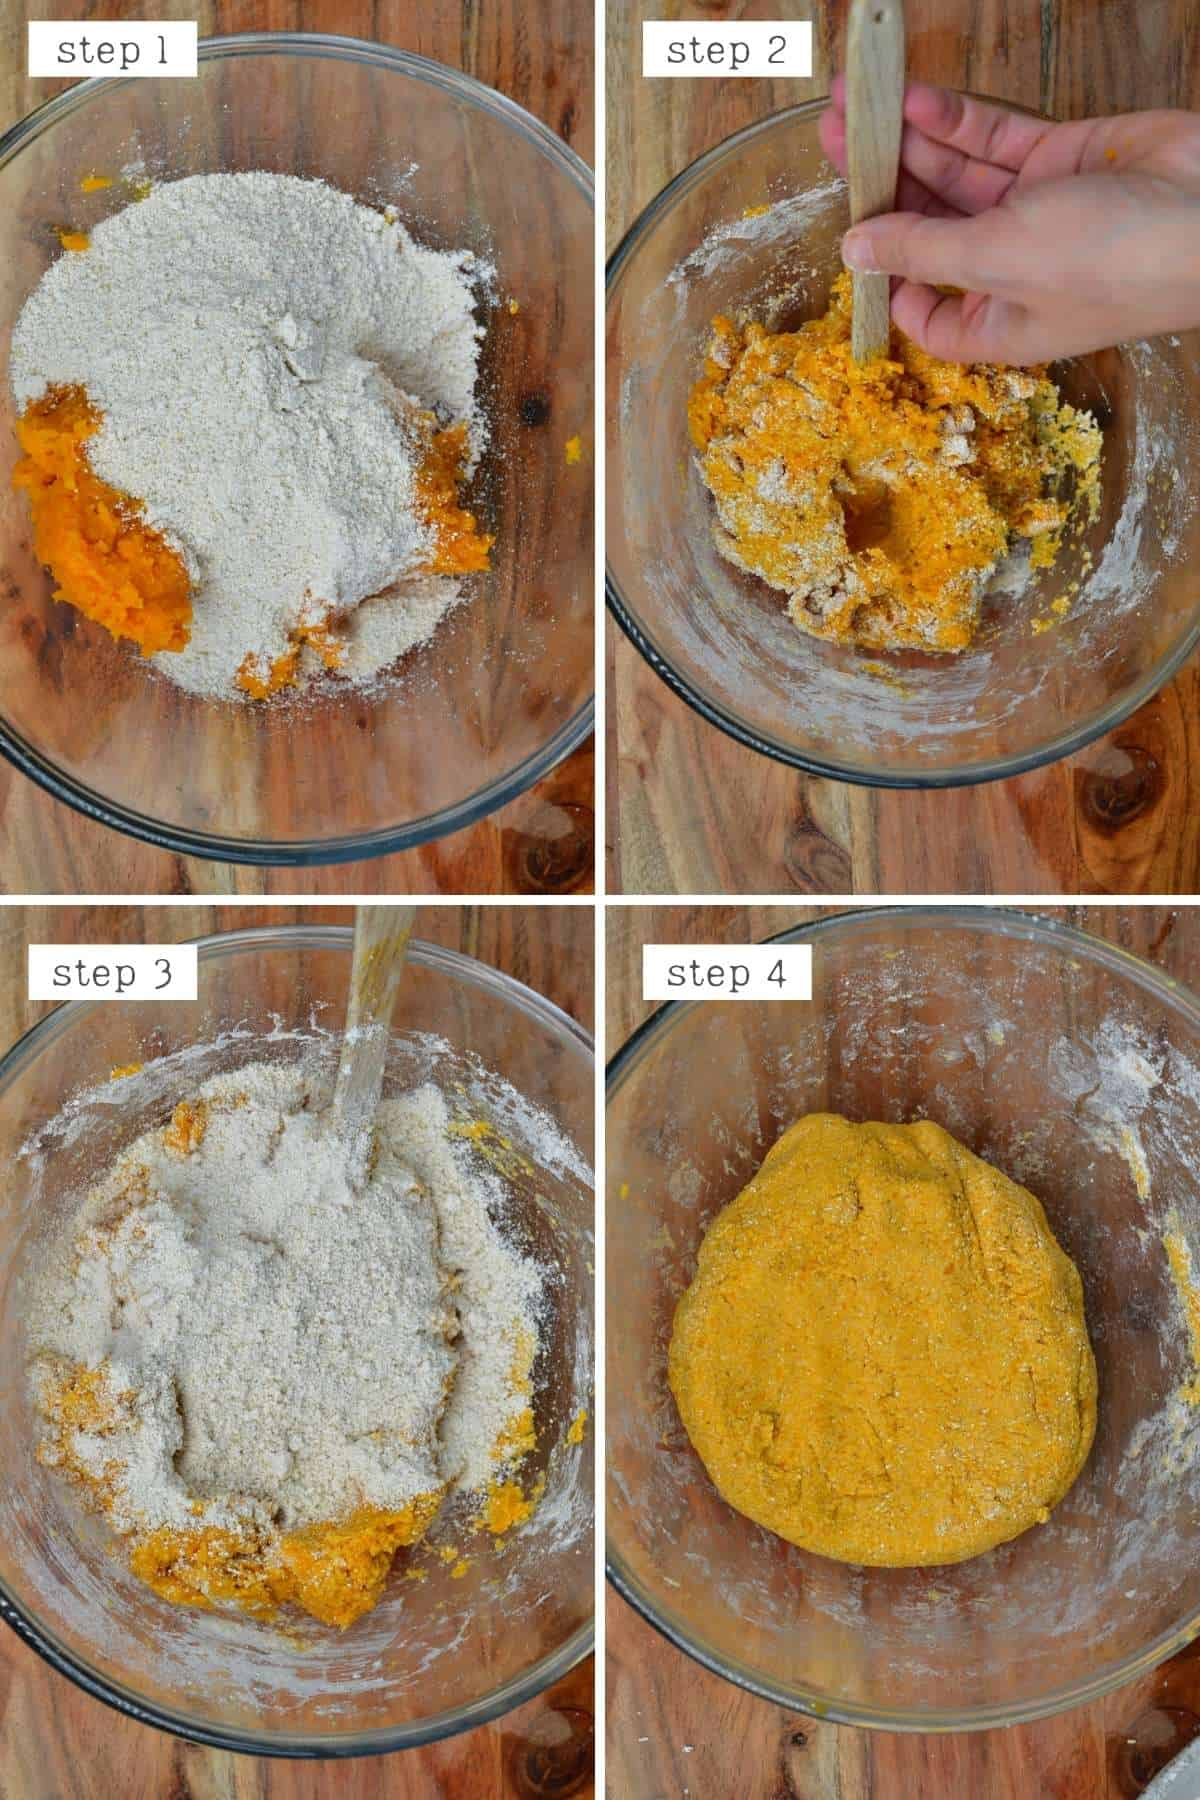 Steps for making sweet potato dough